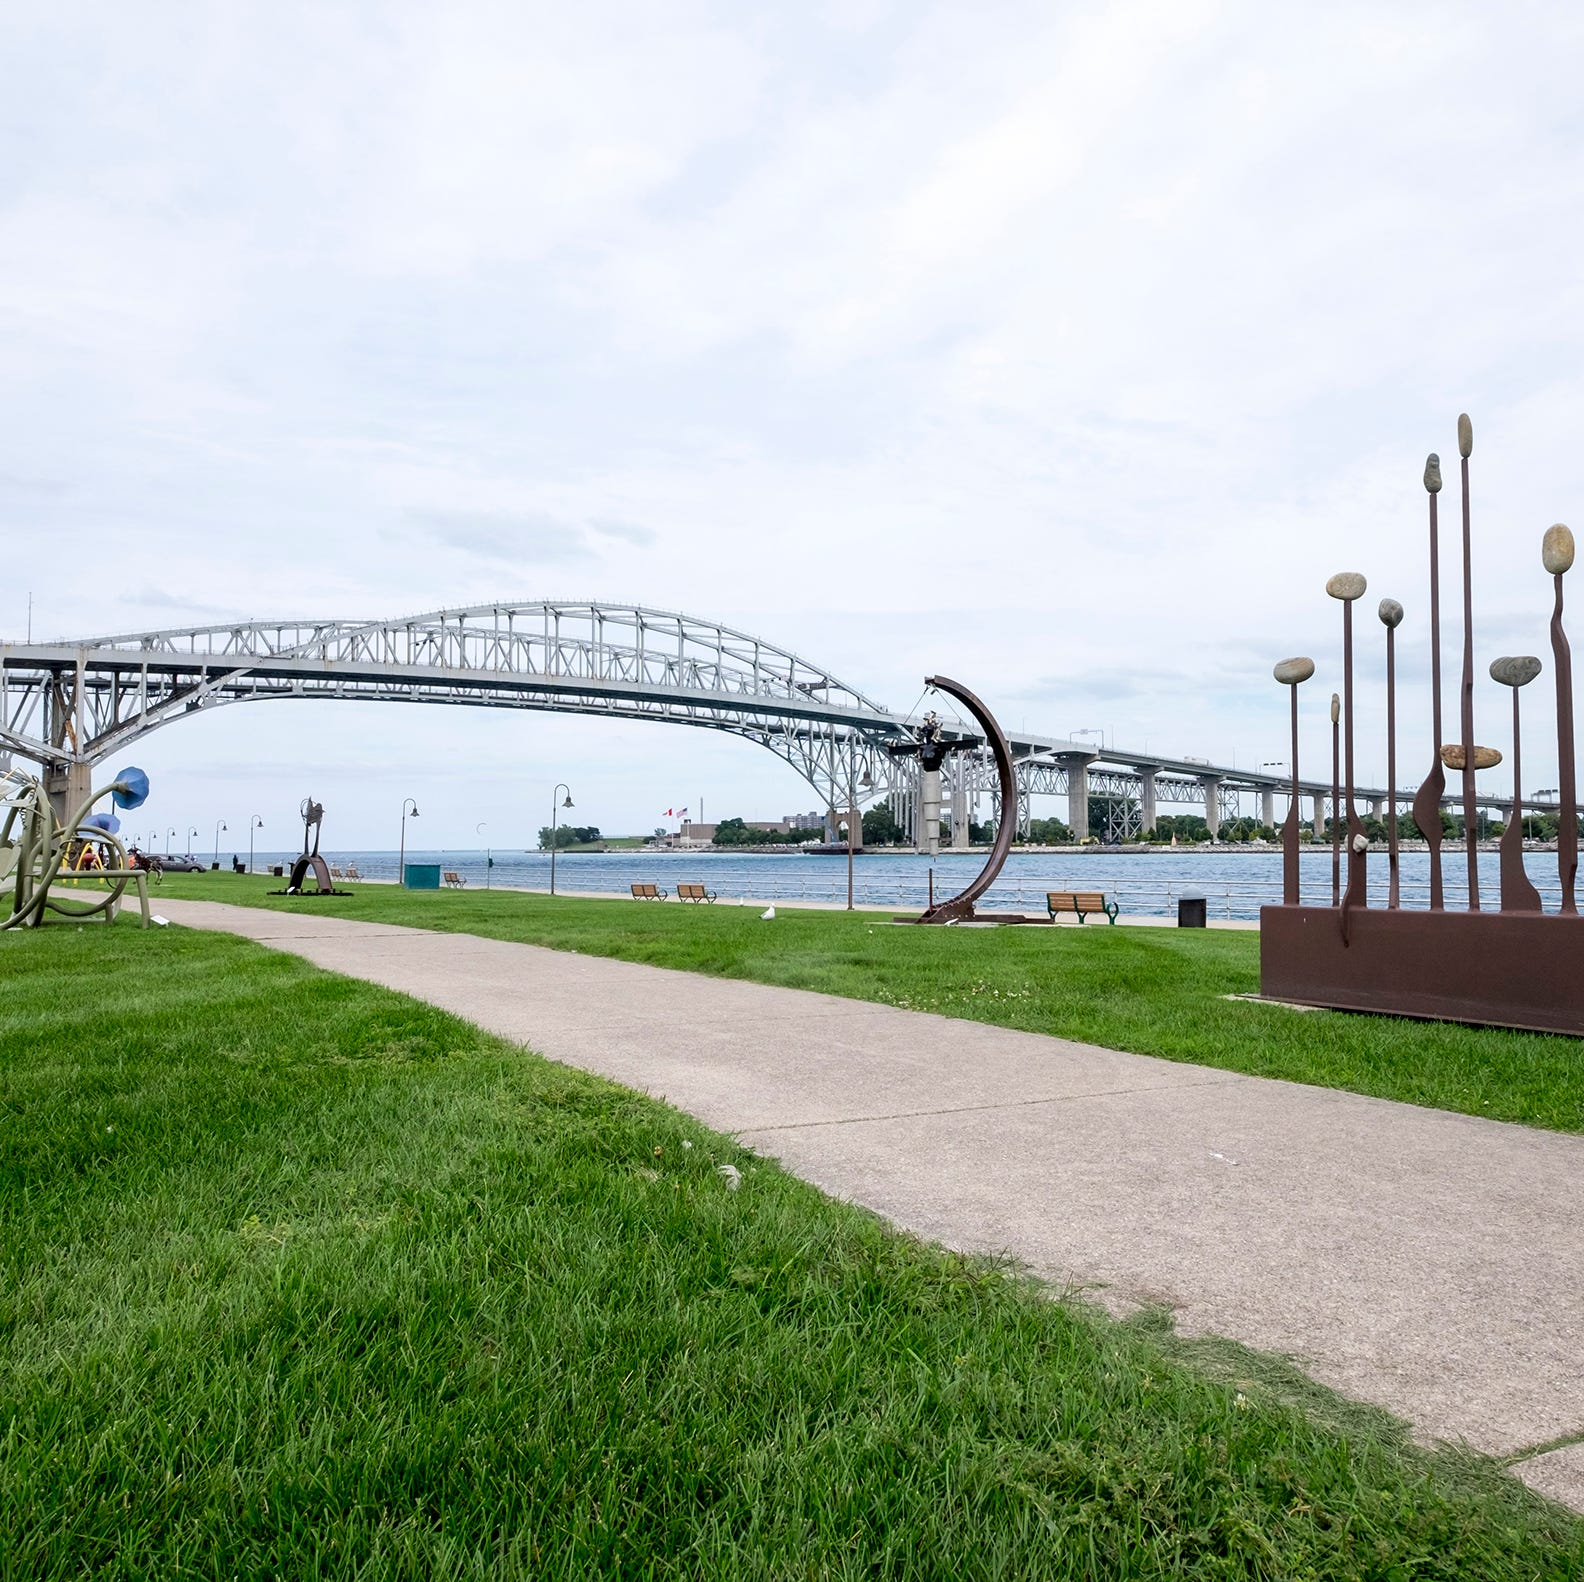 New sculptures coming to riverfront boardwalk area